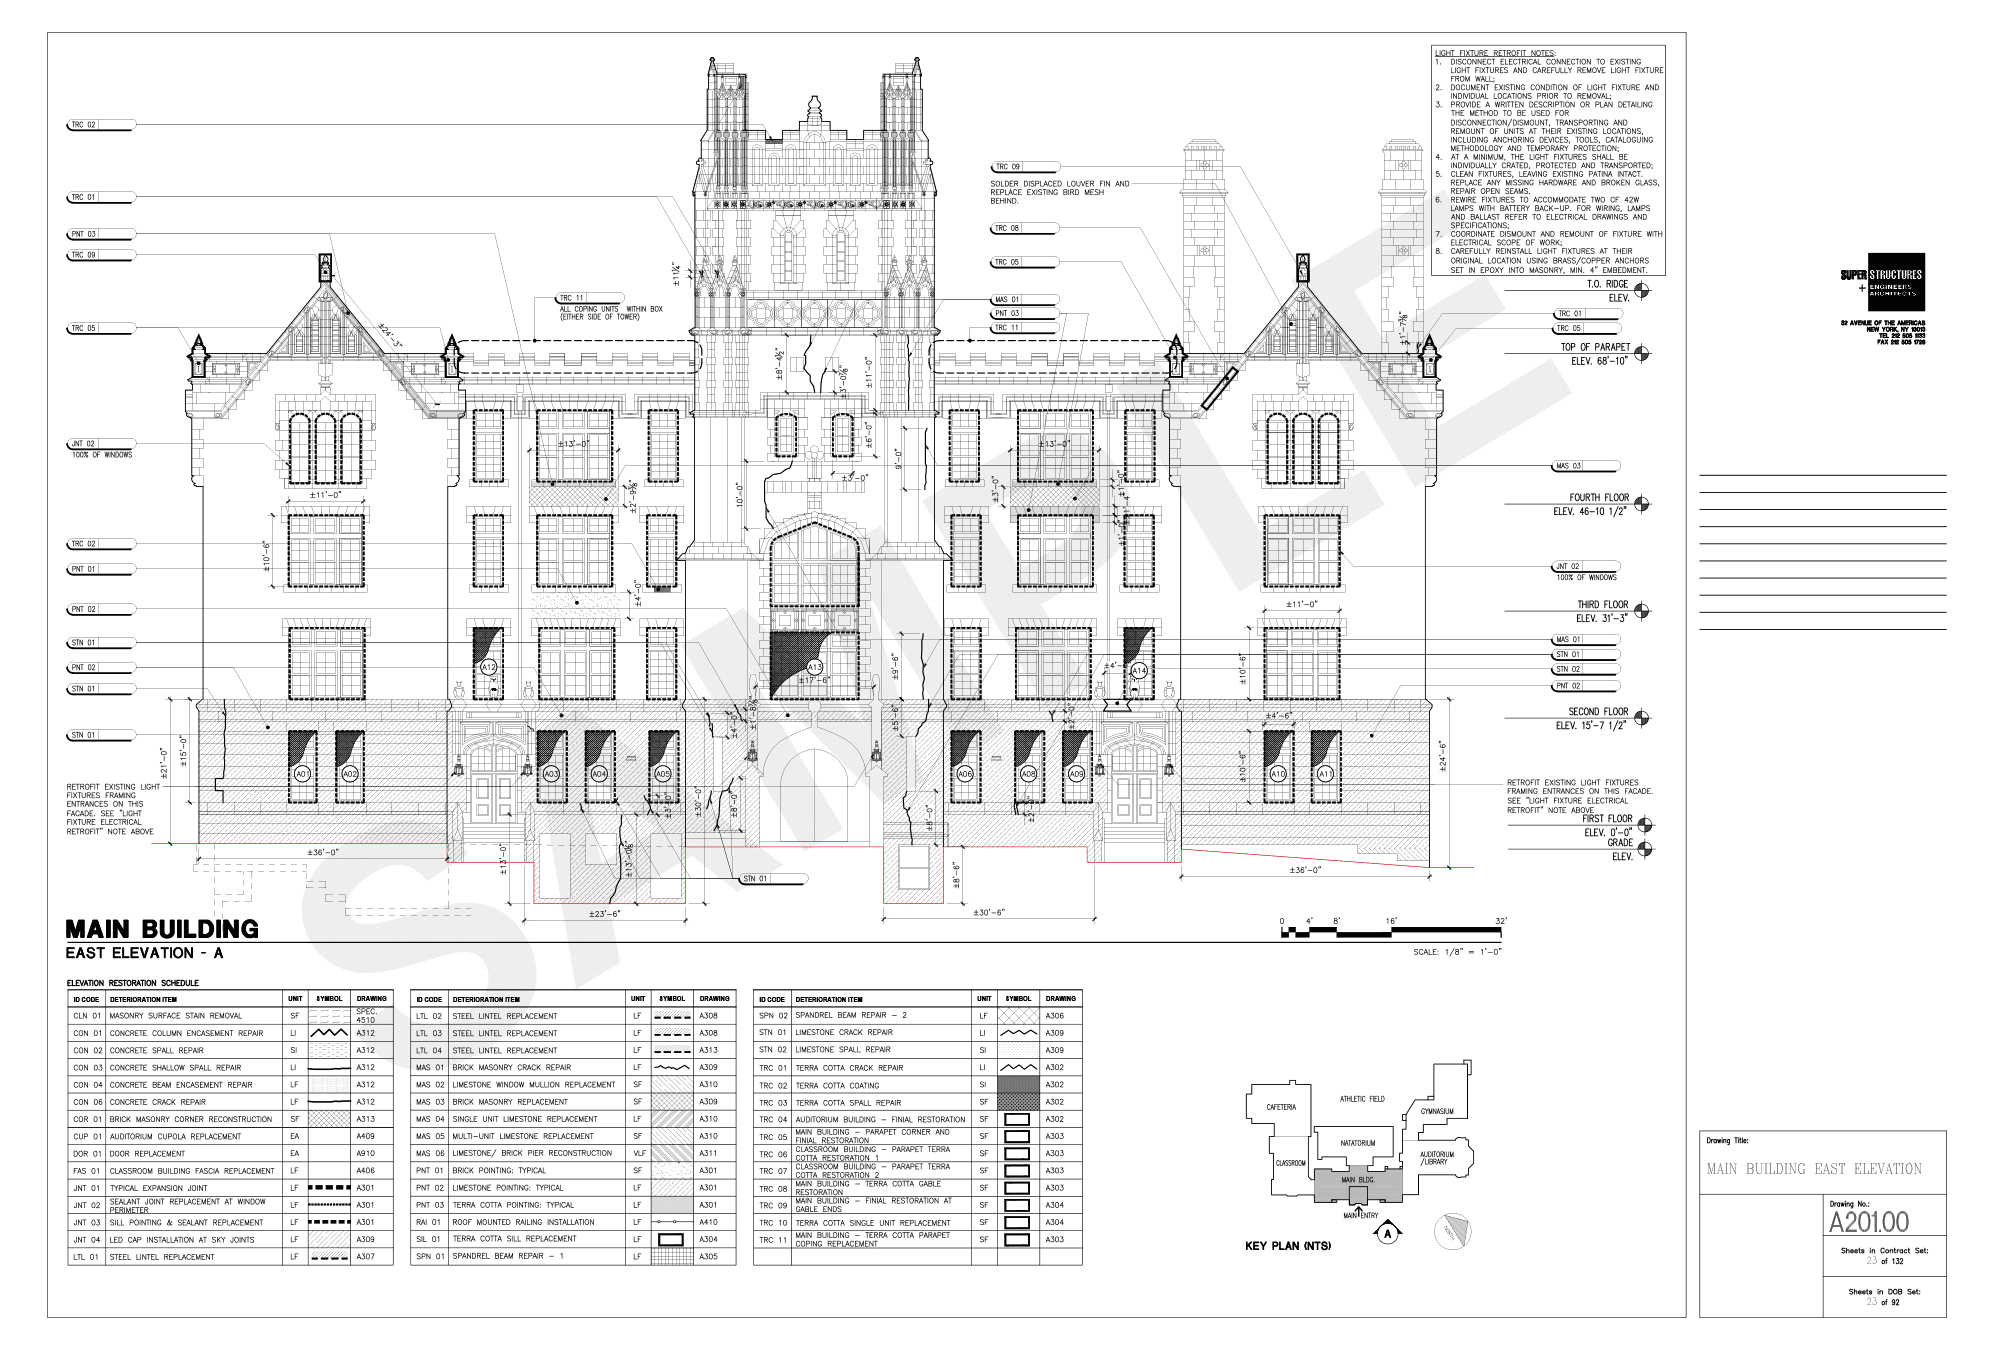 restoration design approach superstructures view drawing